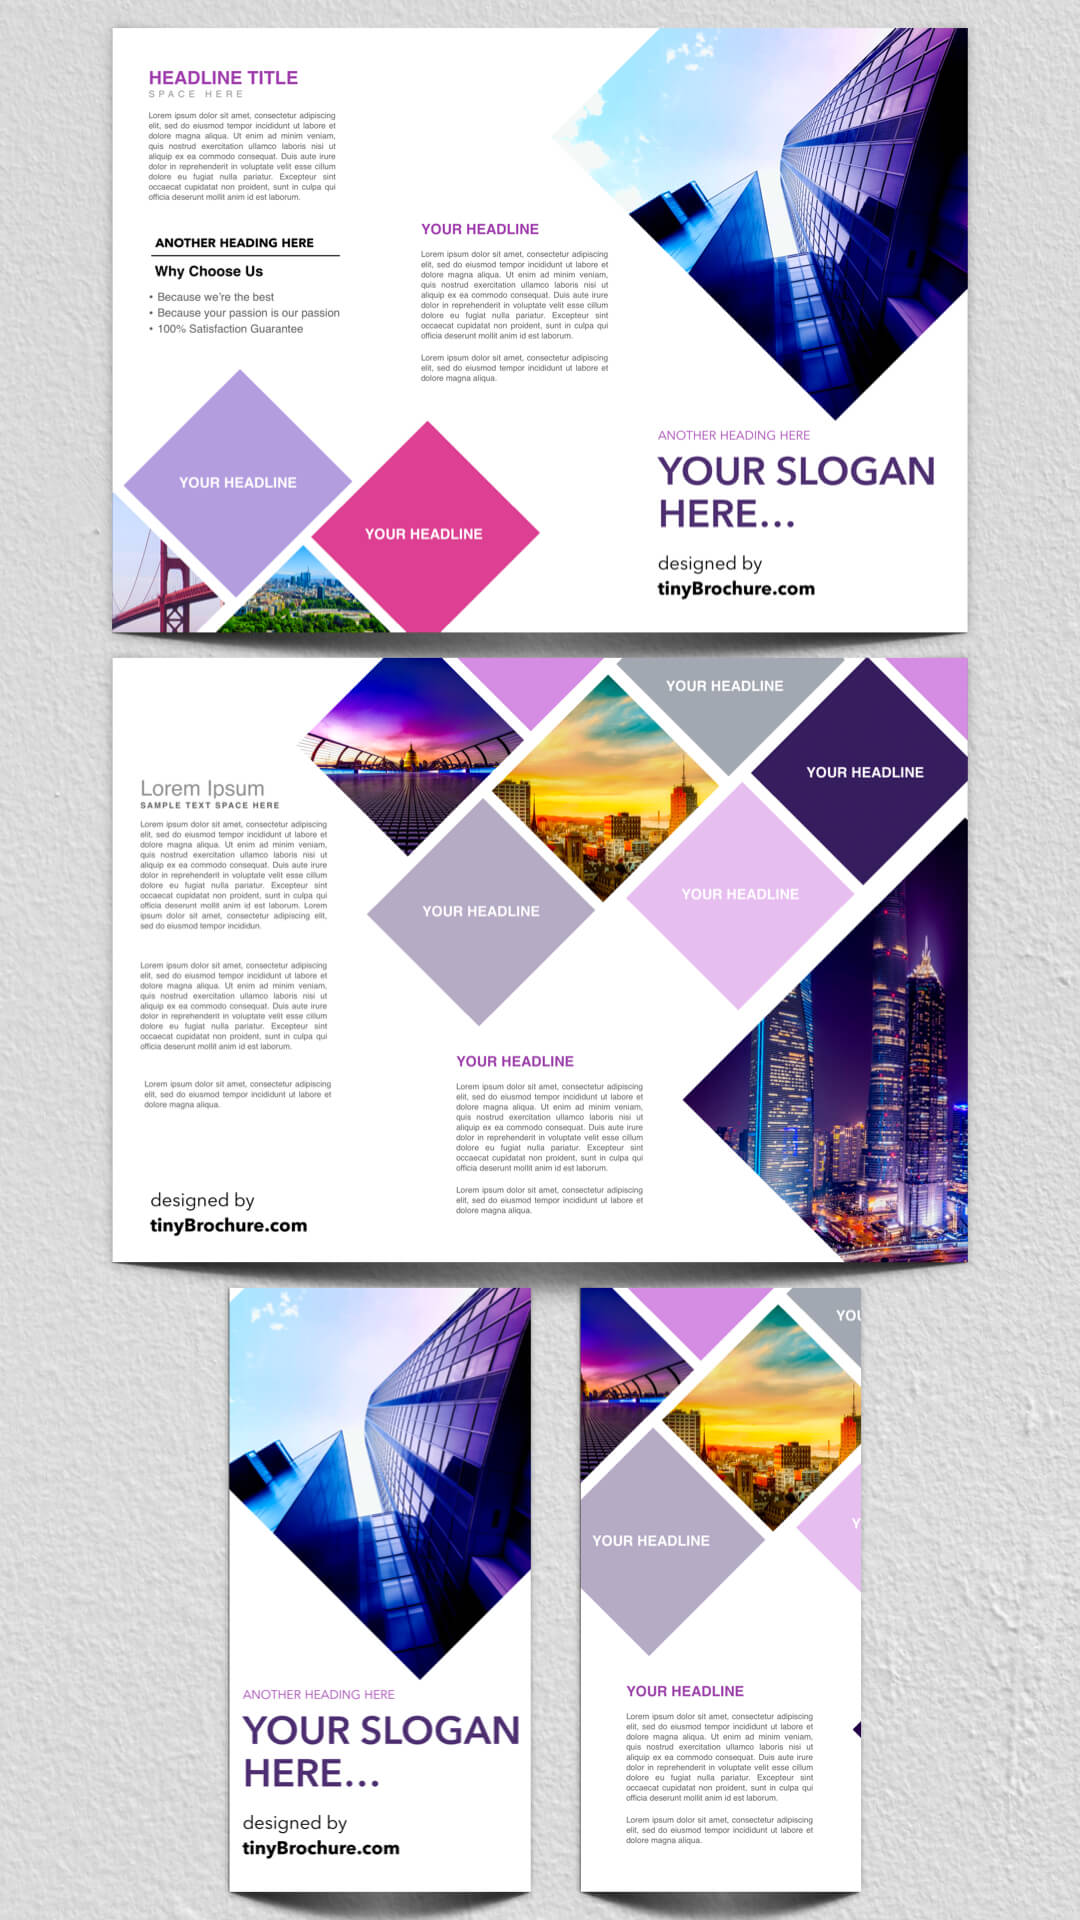 3 Panel Brochure Template Google Docs Free | Graphic Design intended for Google Docs Travel Brochure Template